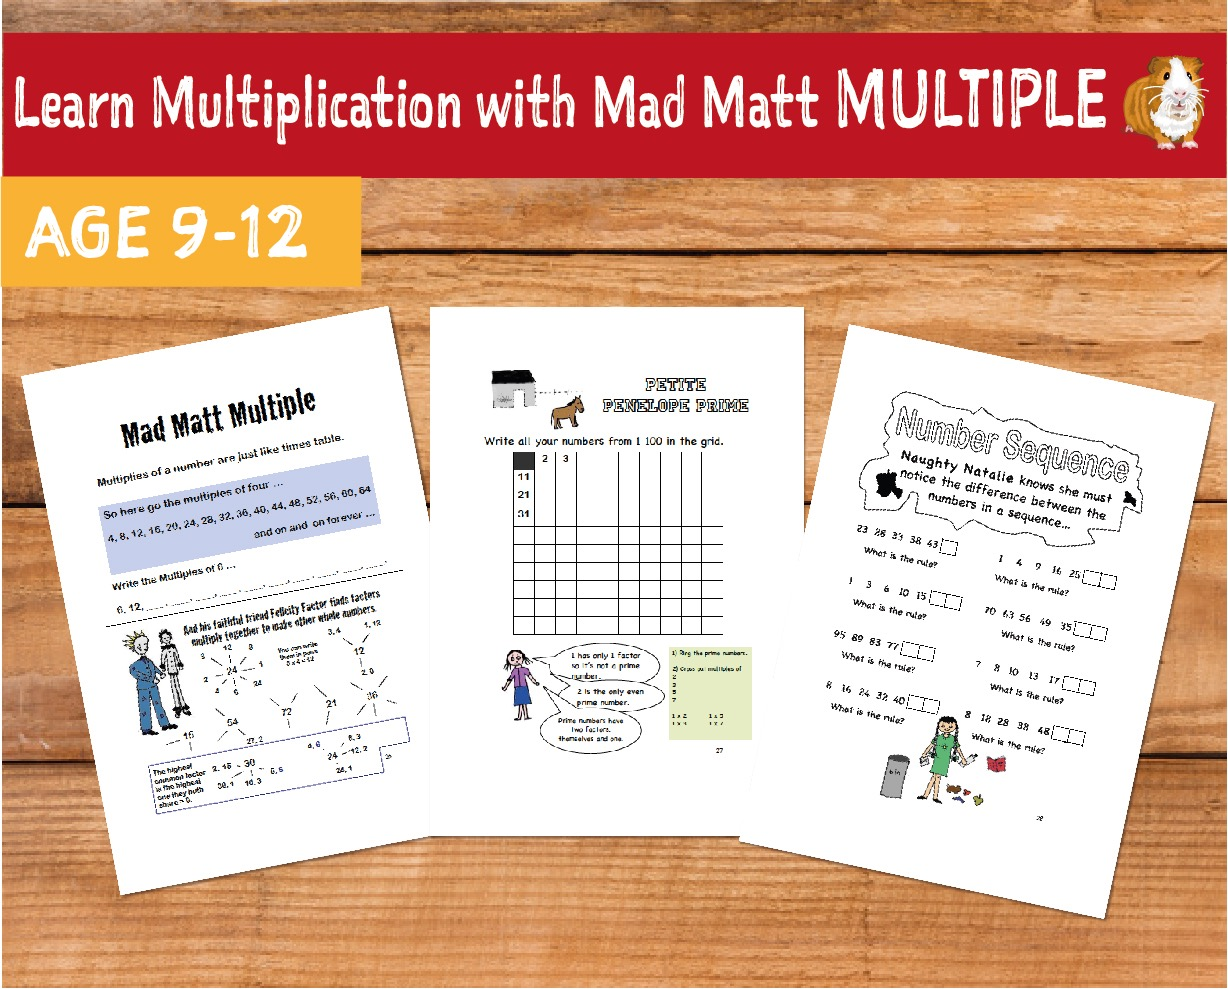 Learn Multiplication With Mad Matt Multiple (9-12 years)